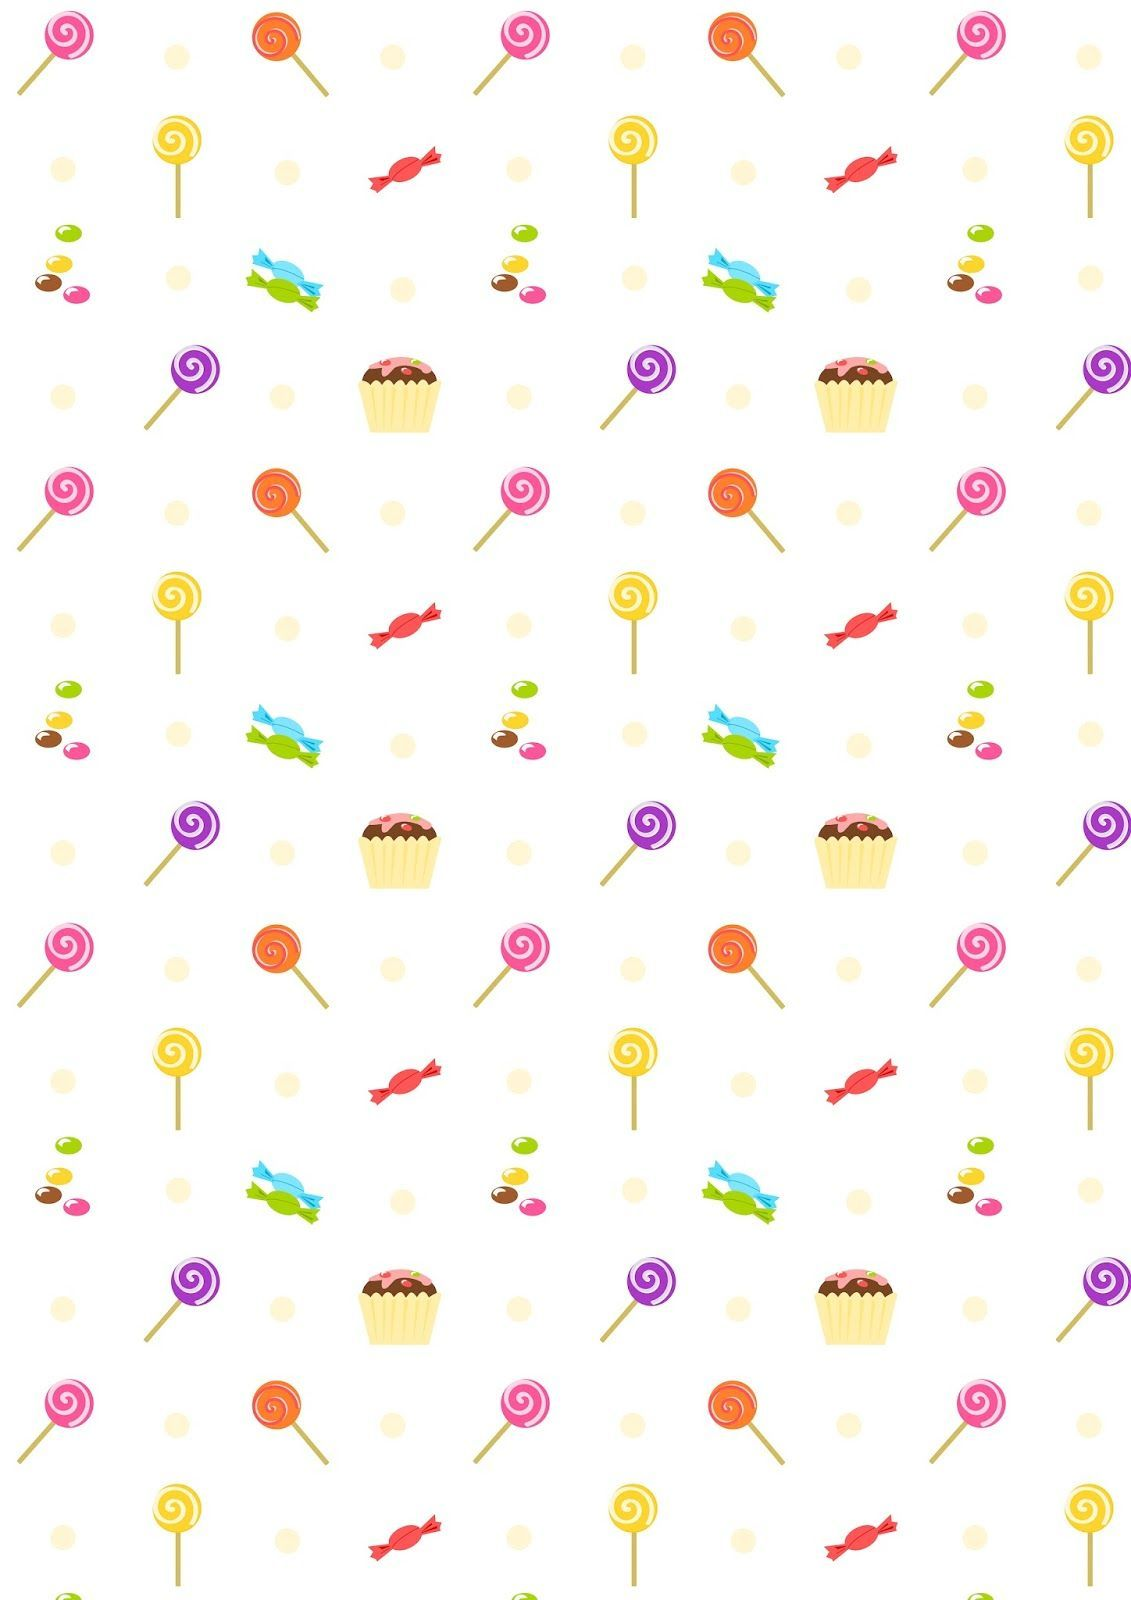 35 Inspiration Image Of Free Printables Scrapbooking Paper Free Printables Scrapbooking Baby Scrapbook Paper Scrapbook Printables Free Digital Scrapbook Paper